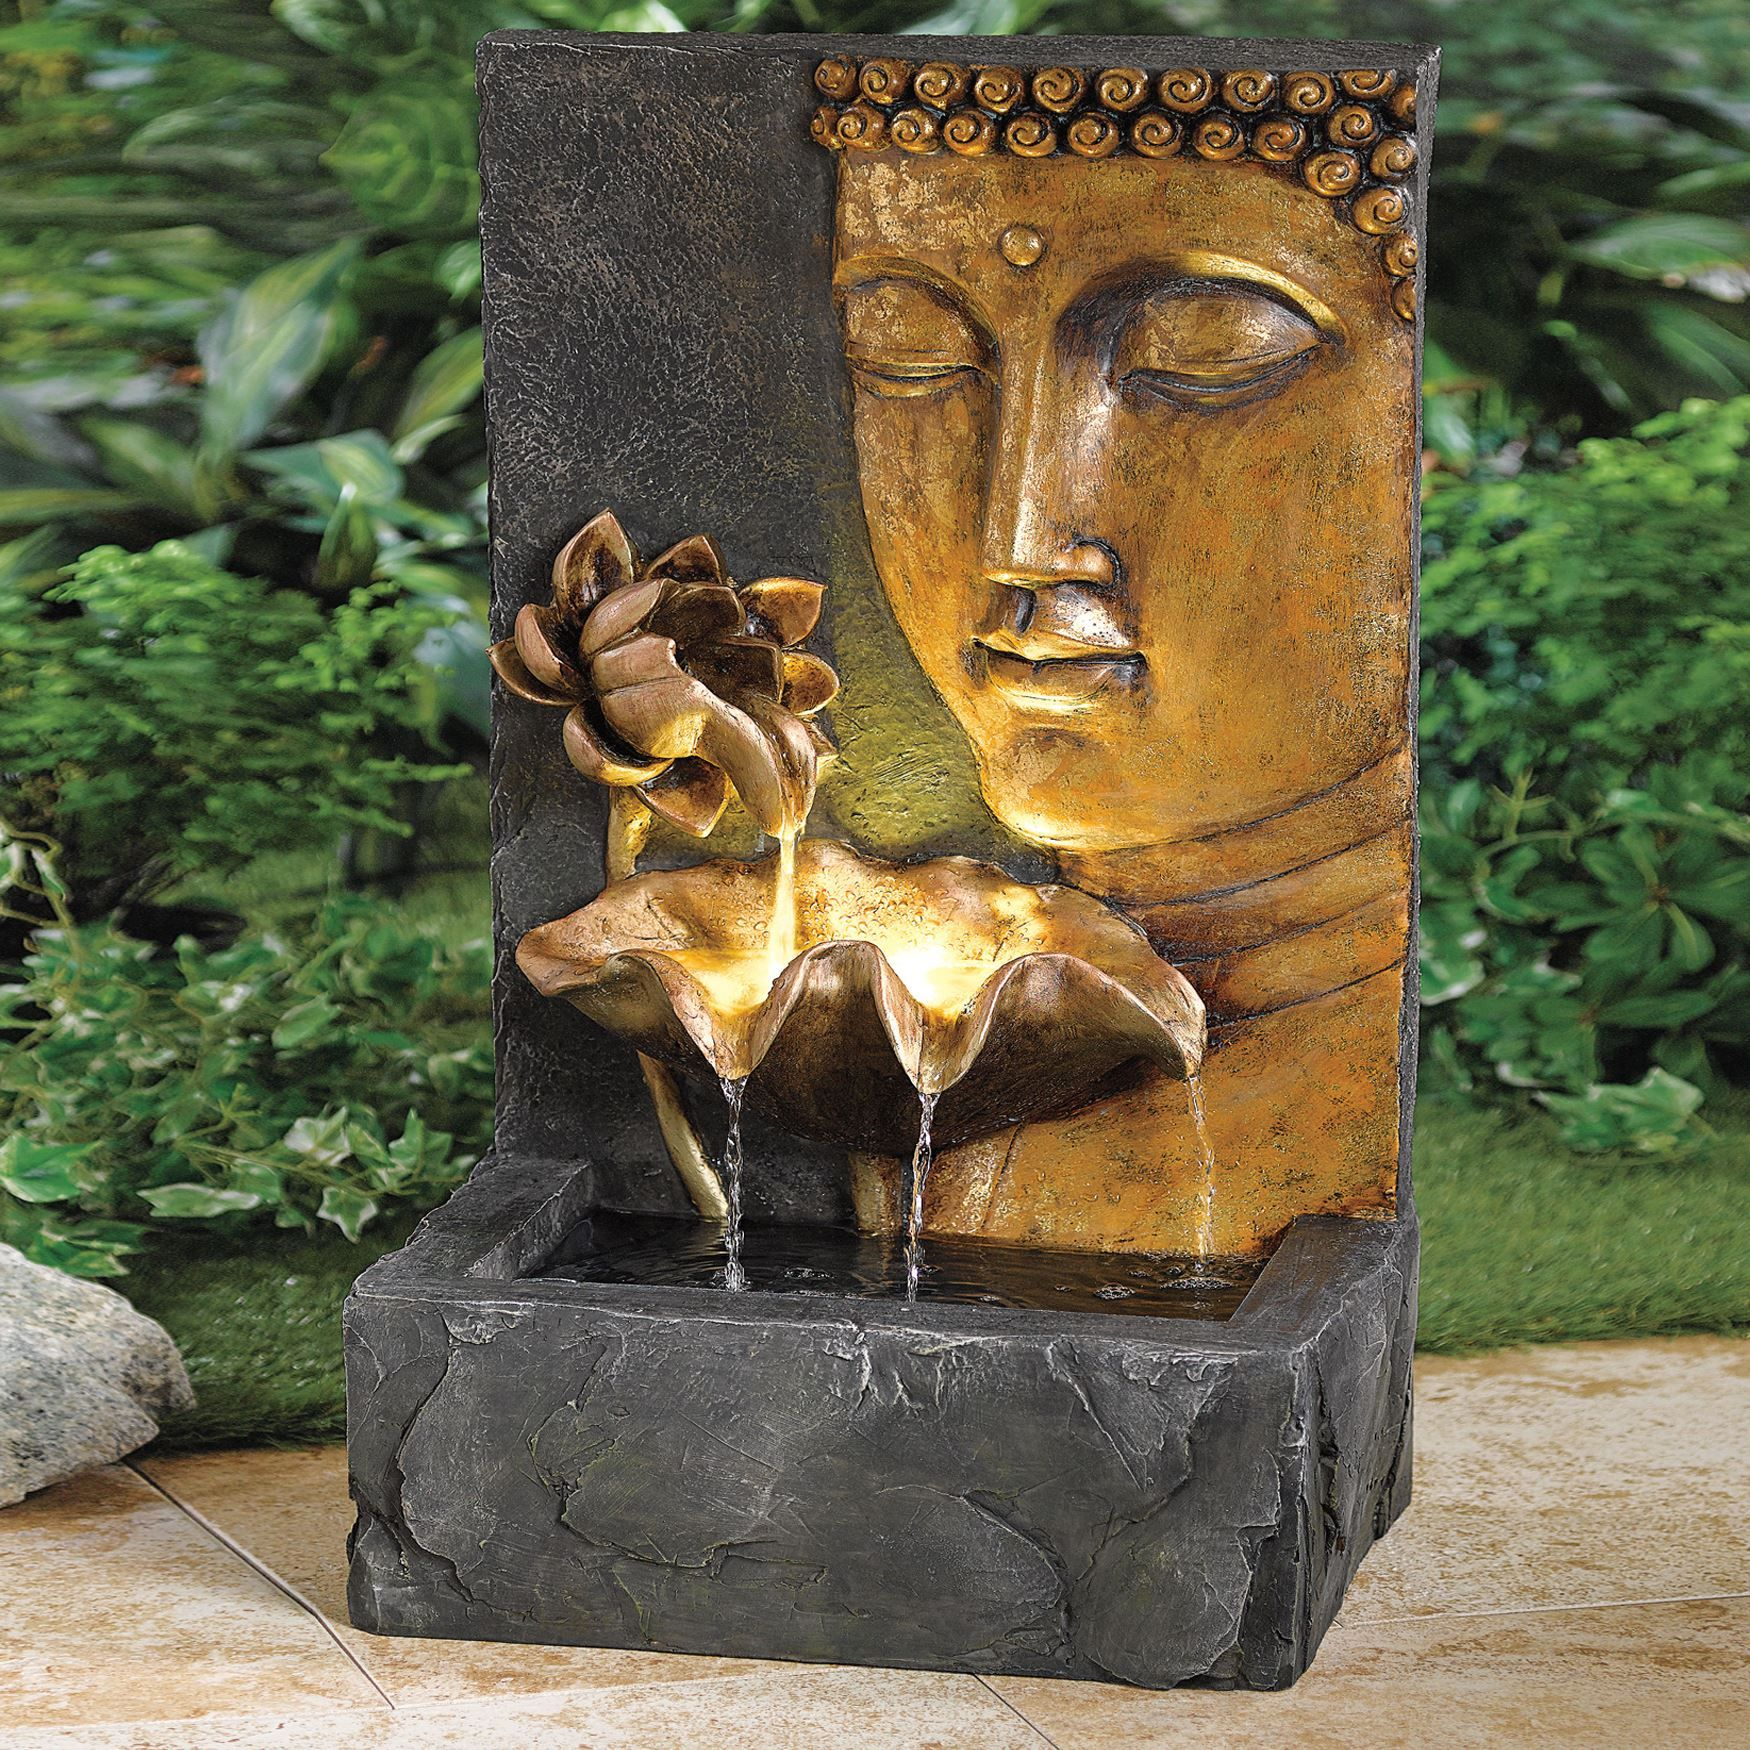 Buddha Fountains: This Beautiful Buddha Water Fountain Brings A Tranquil